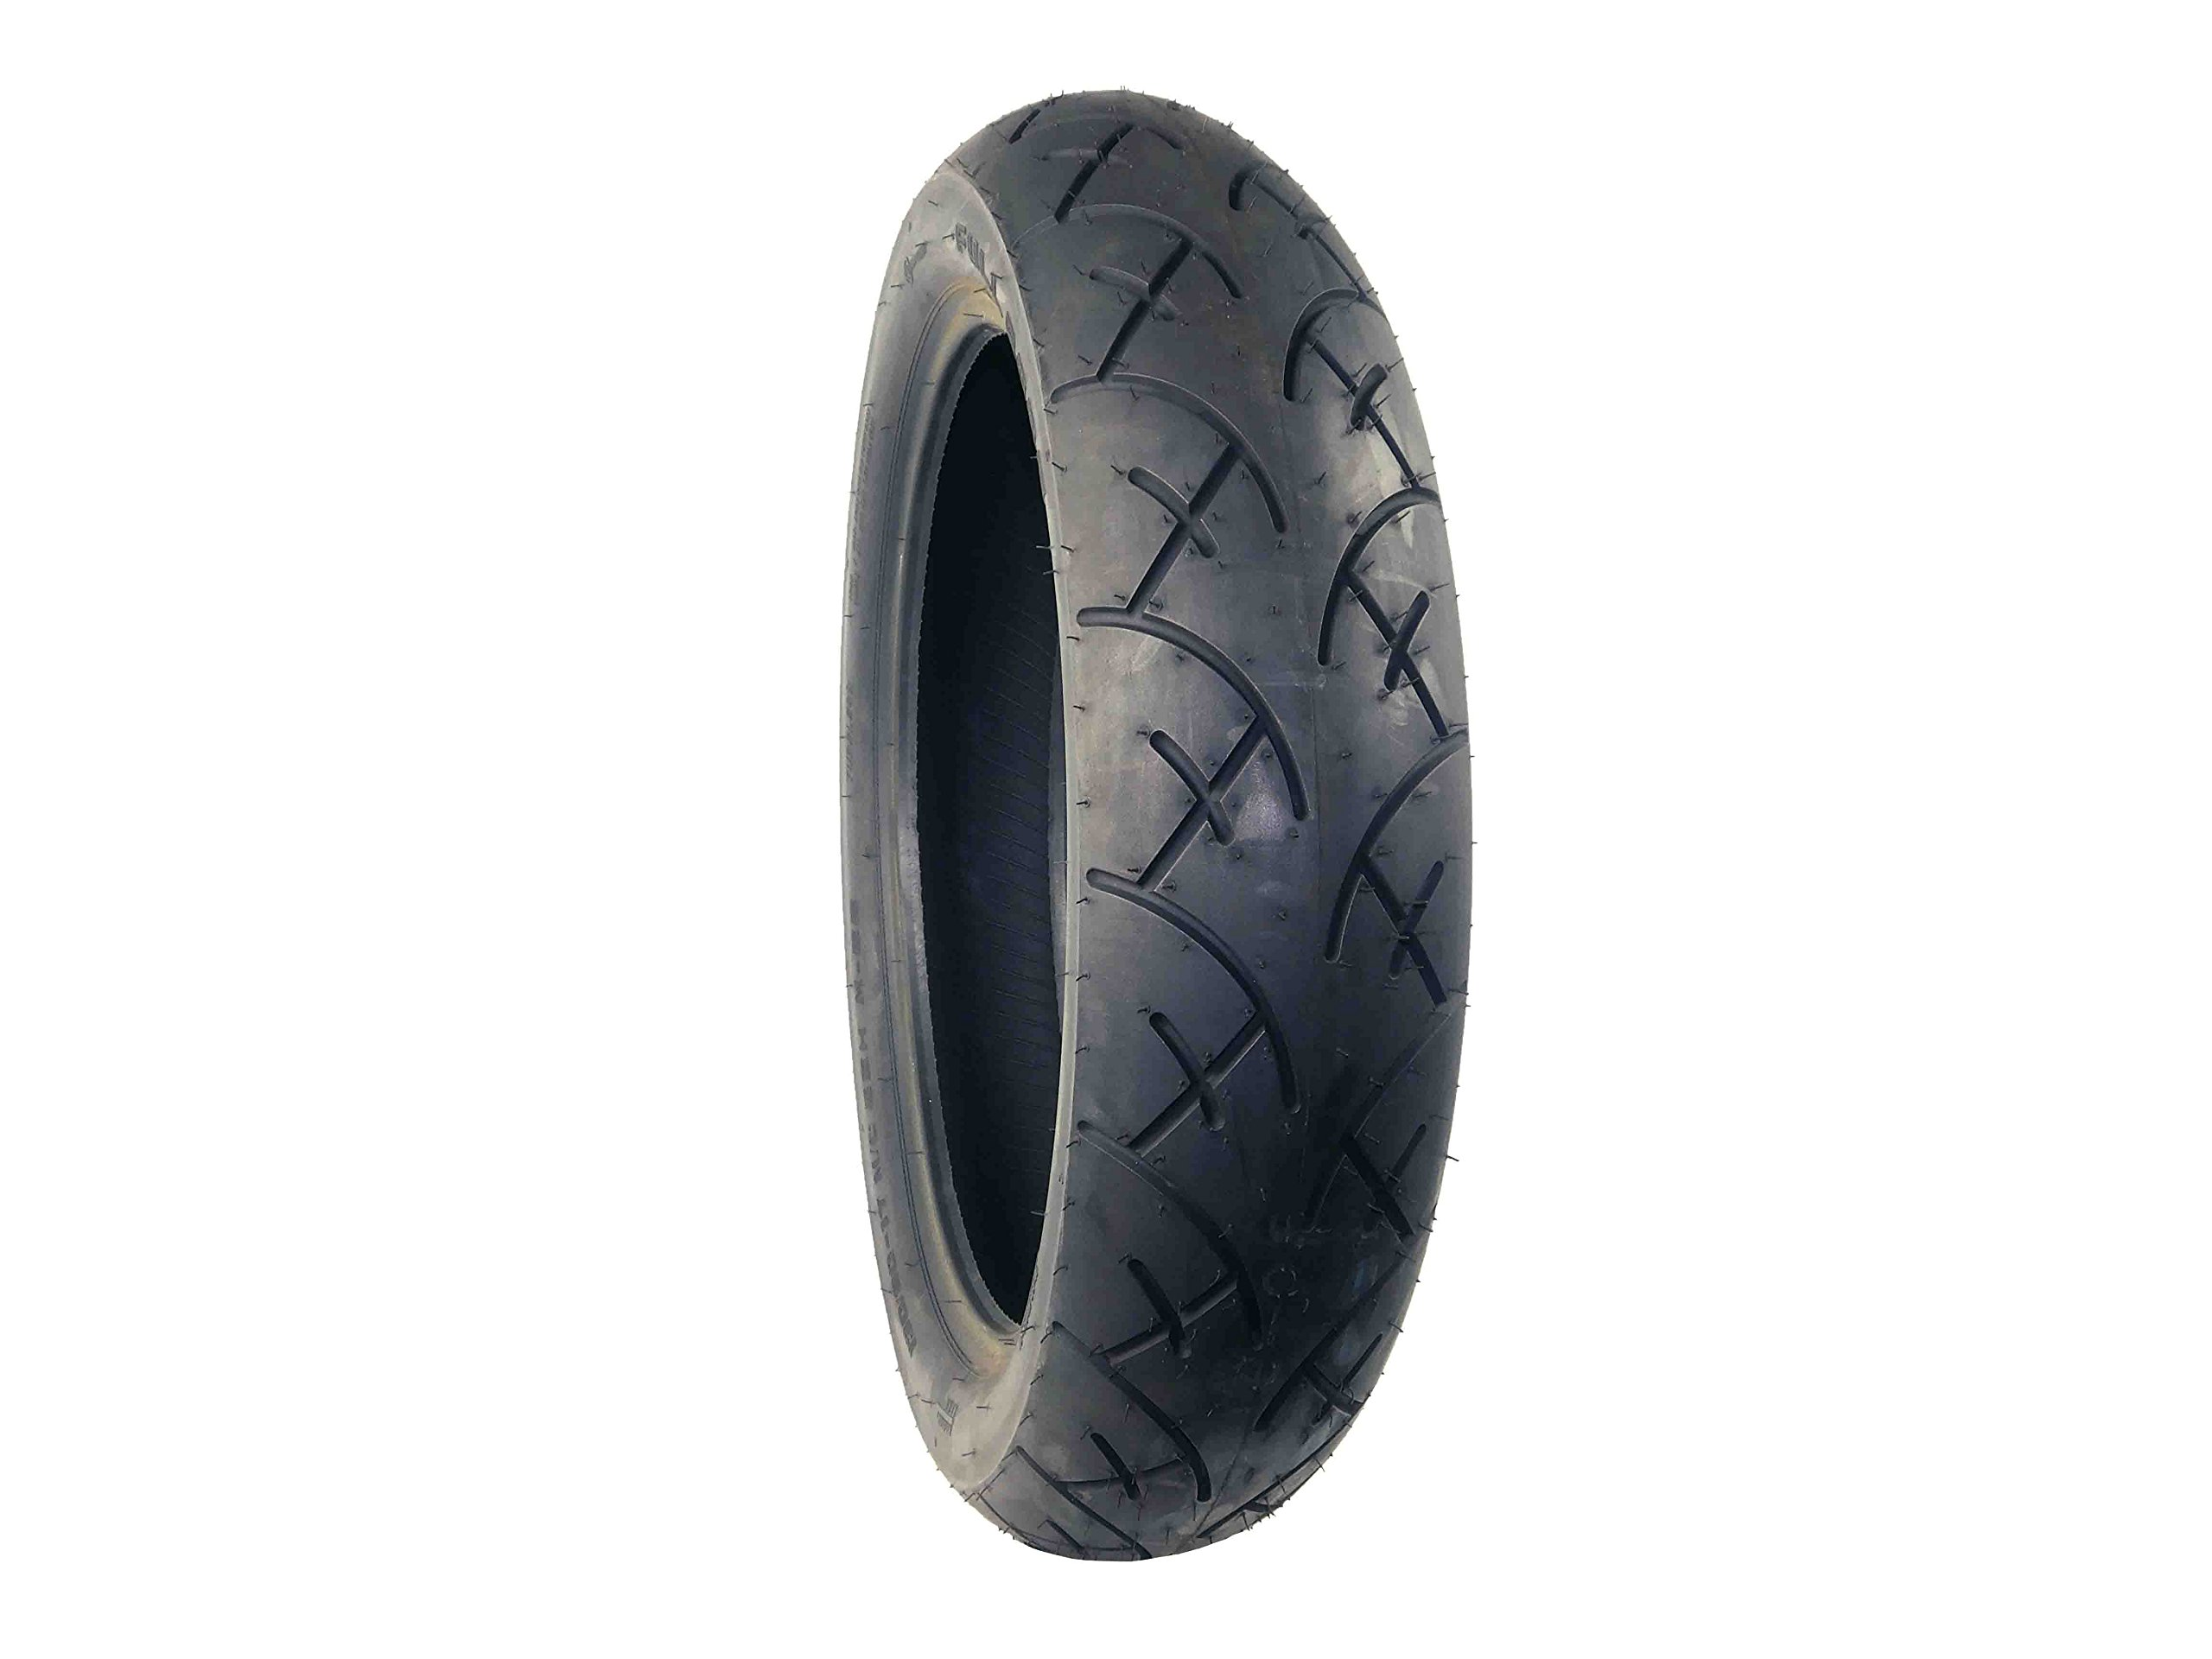 Full Bore USA 130/80B17 Bias Front 65H M66 Cruisers Motorcycle Tire 130/80-17